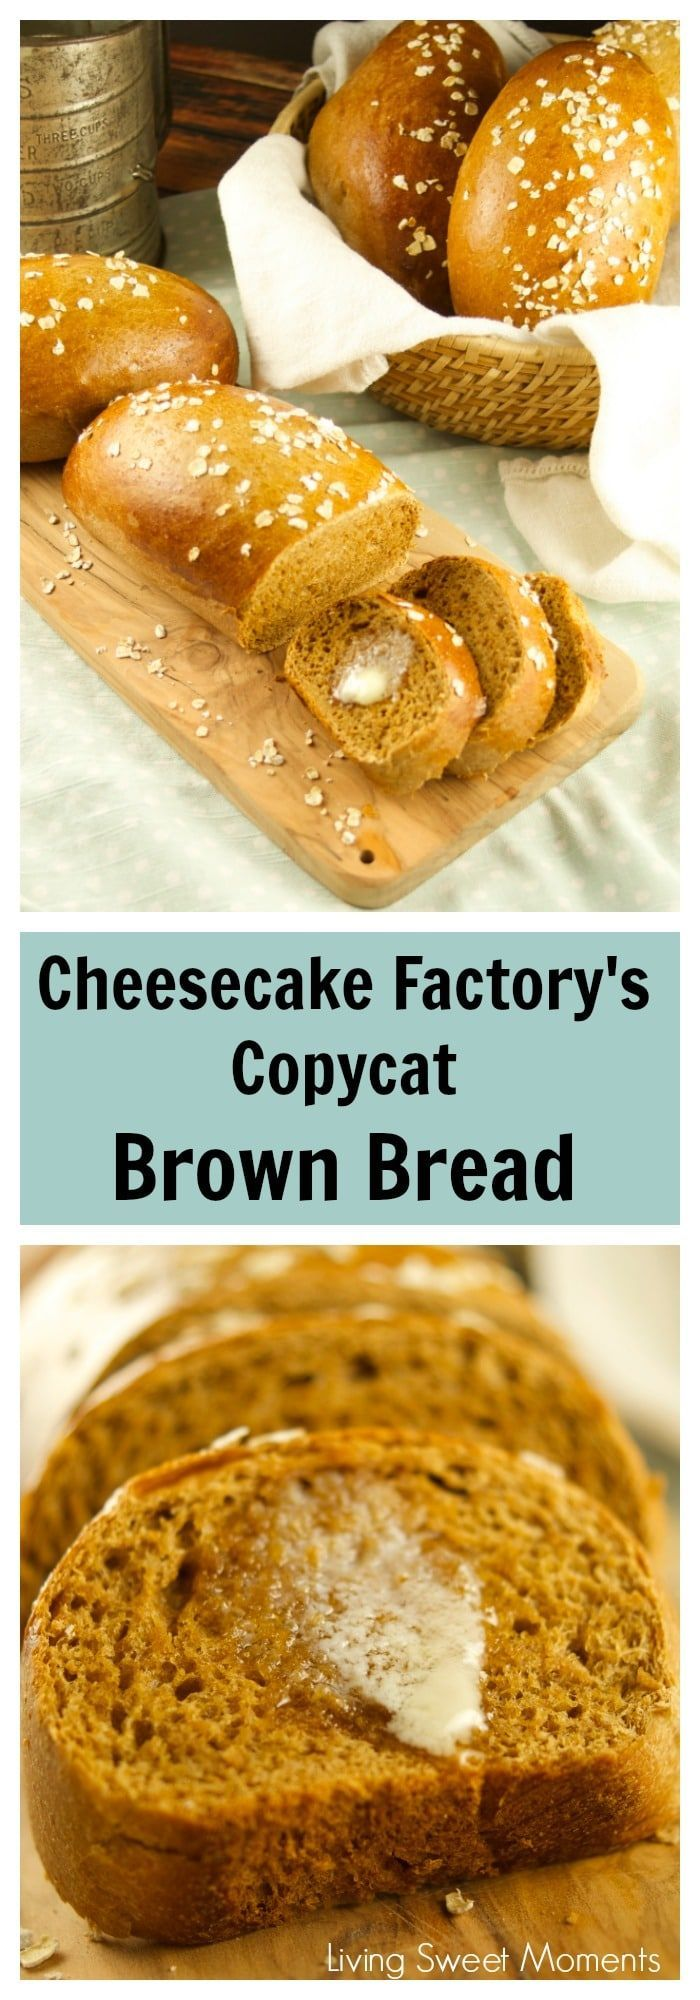 Check out how easy it is to make Copycat Cheesecake Factory Brown Bread with honey and oats. Delicious, soft and just like the real thing. More bread recipes at livingsweetmoments.com via @Livingsmoments